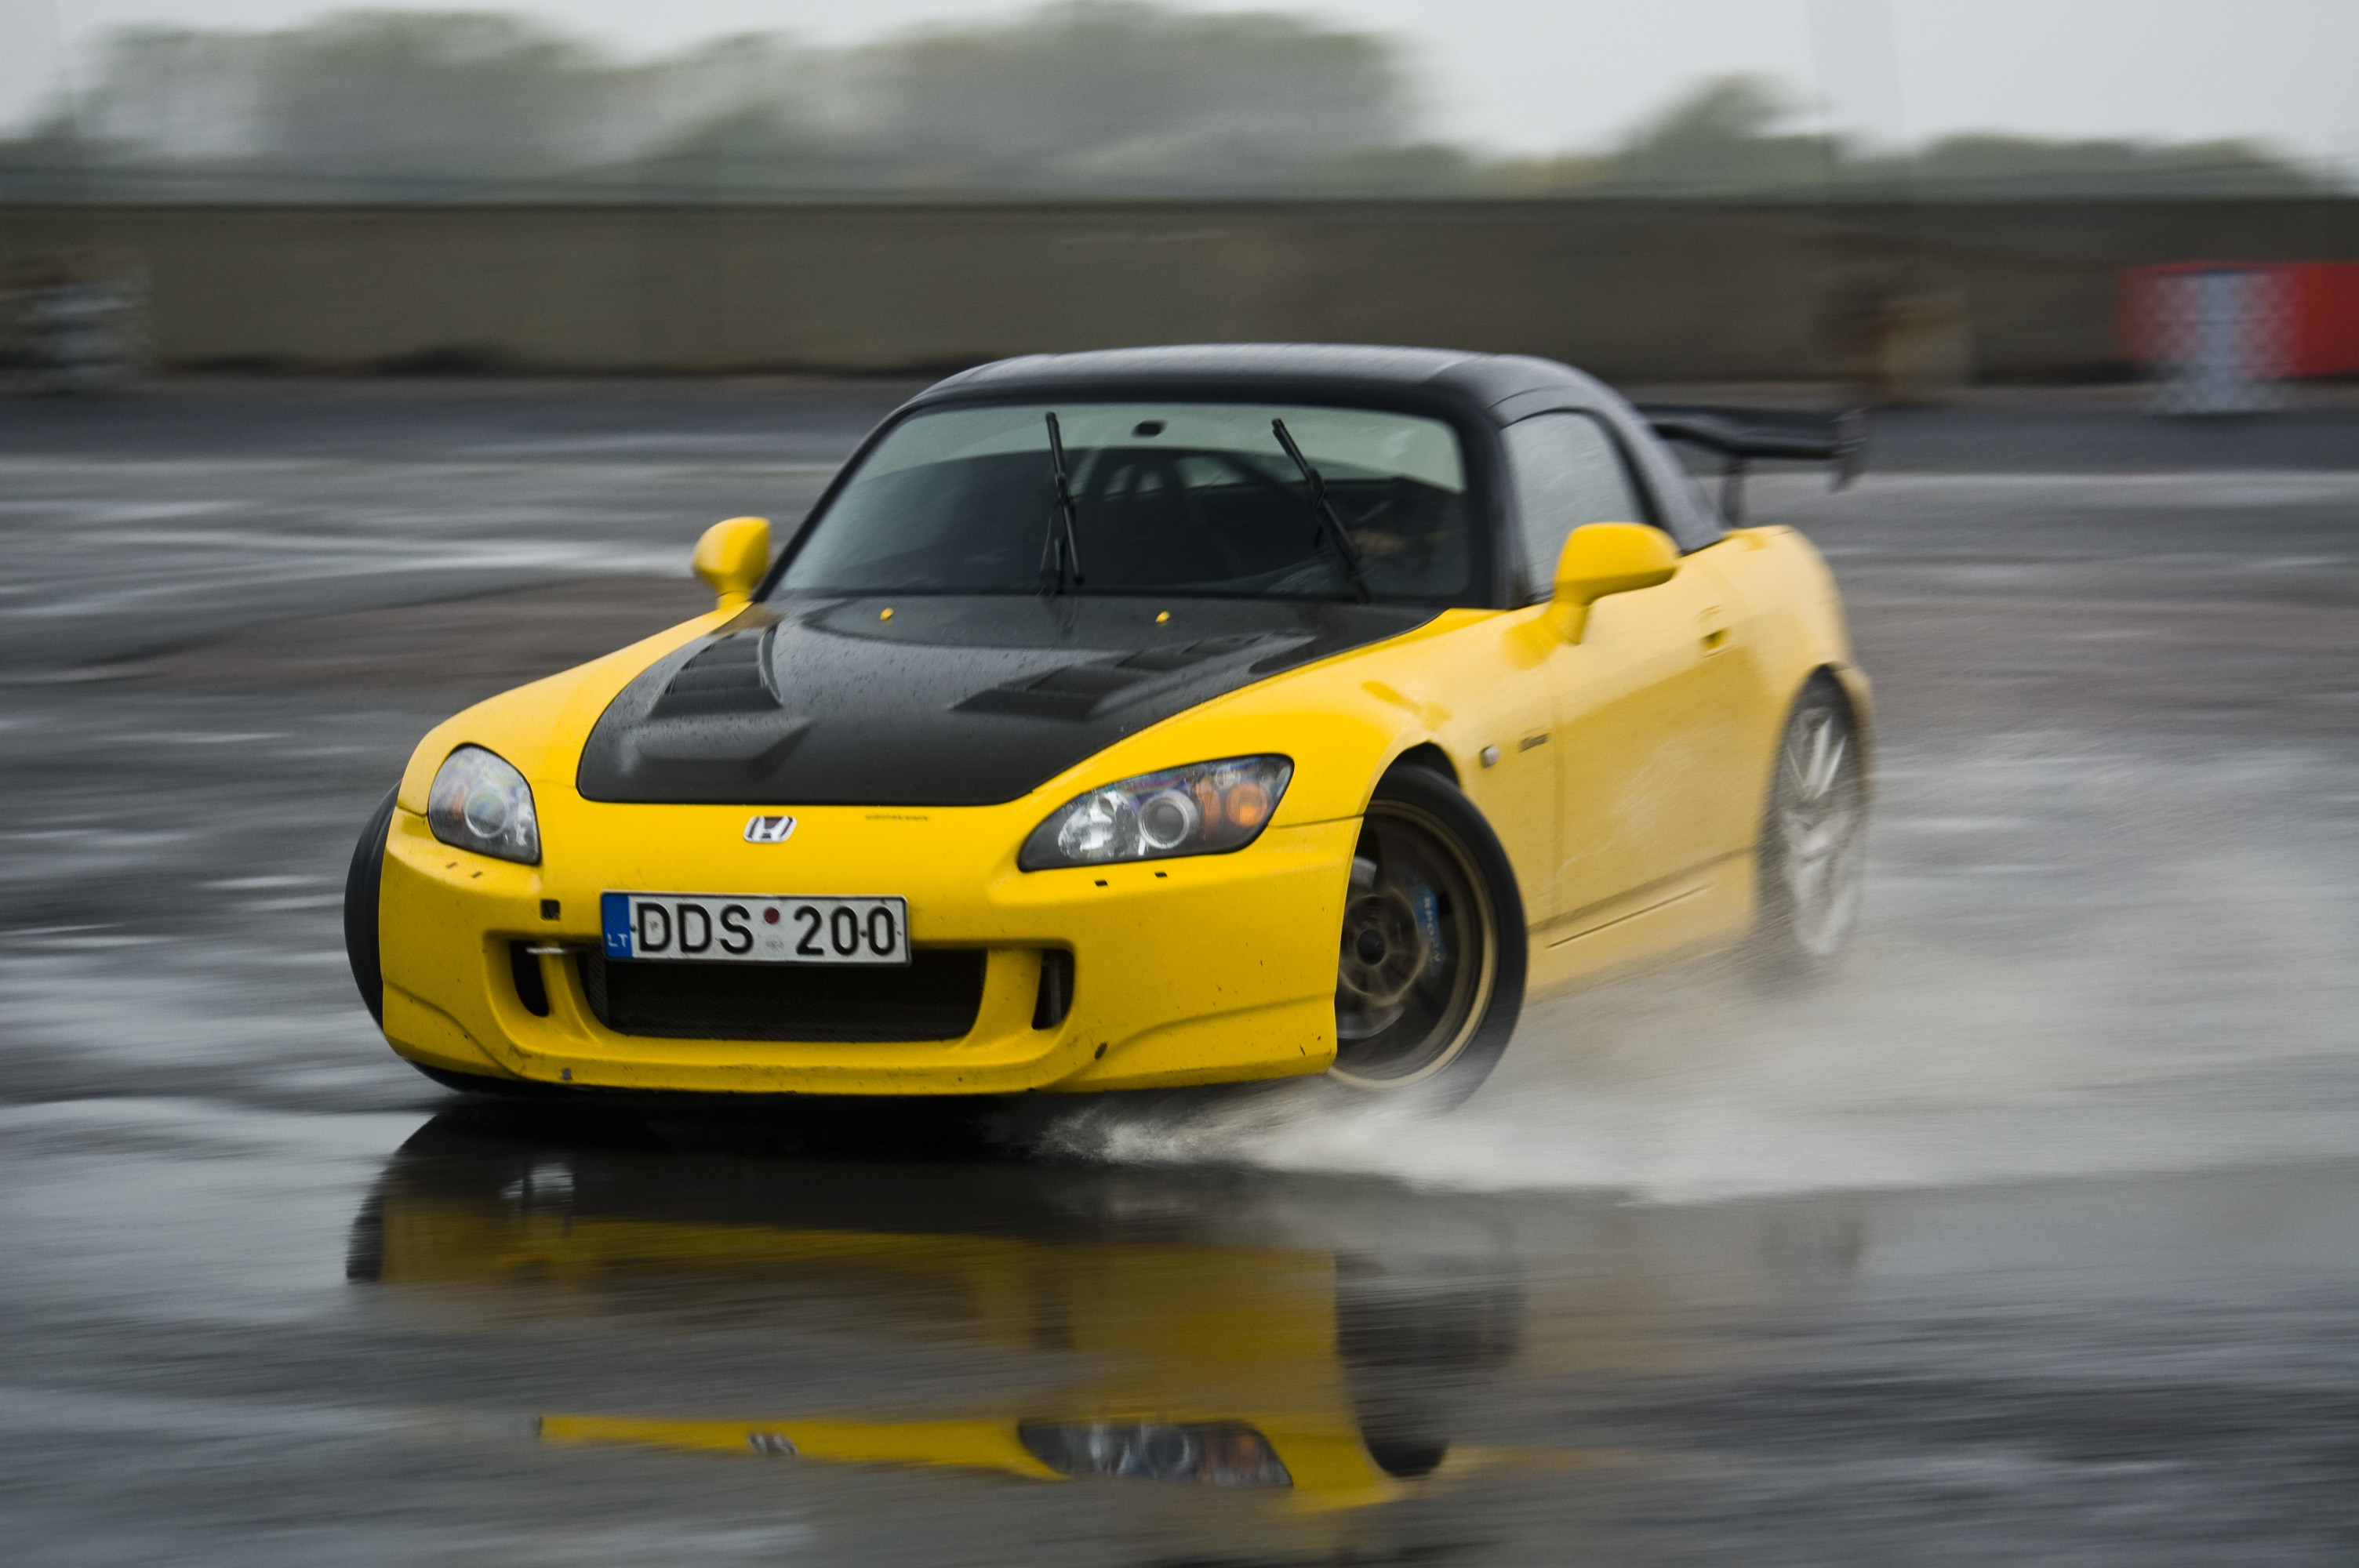 Res: 3008x2000, Back to 25+ Honda S2000 Wallpapers